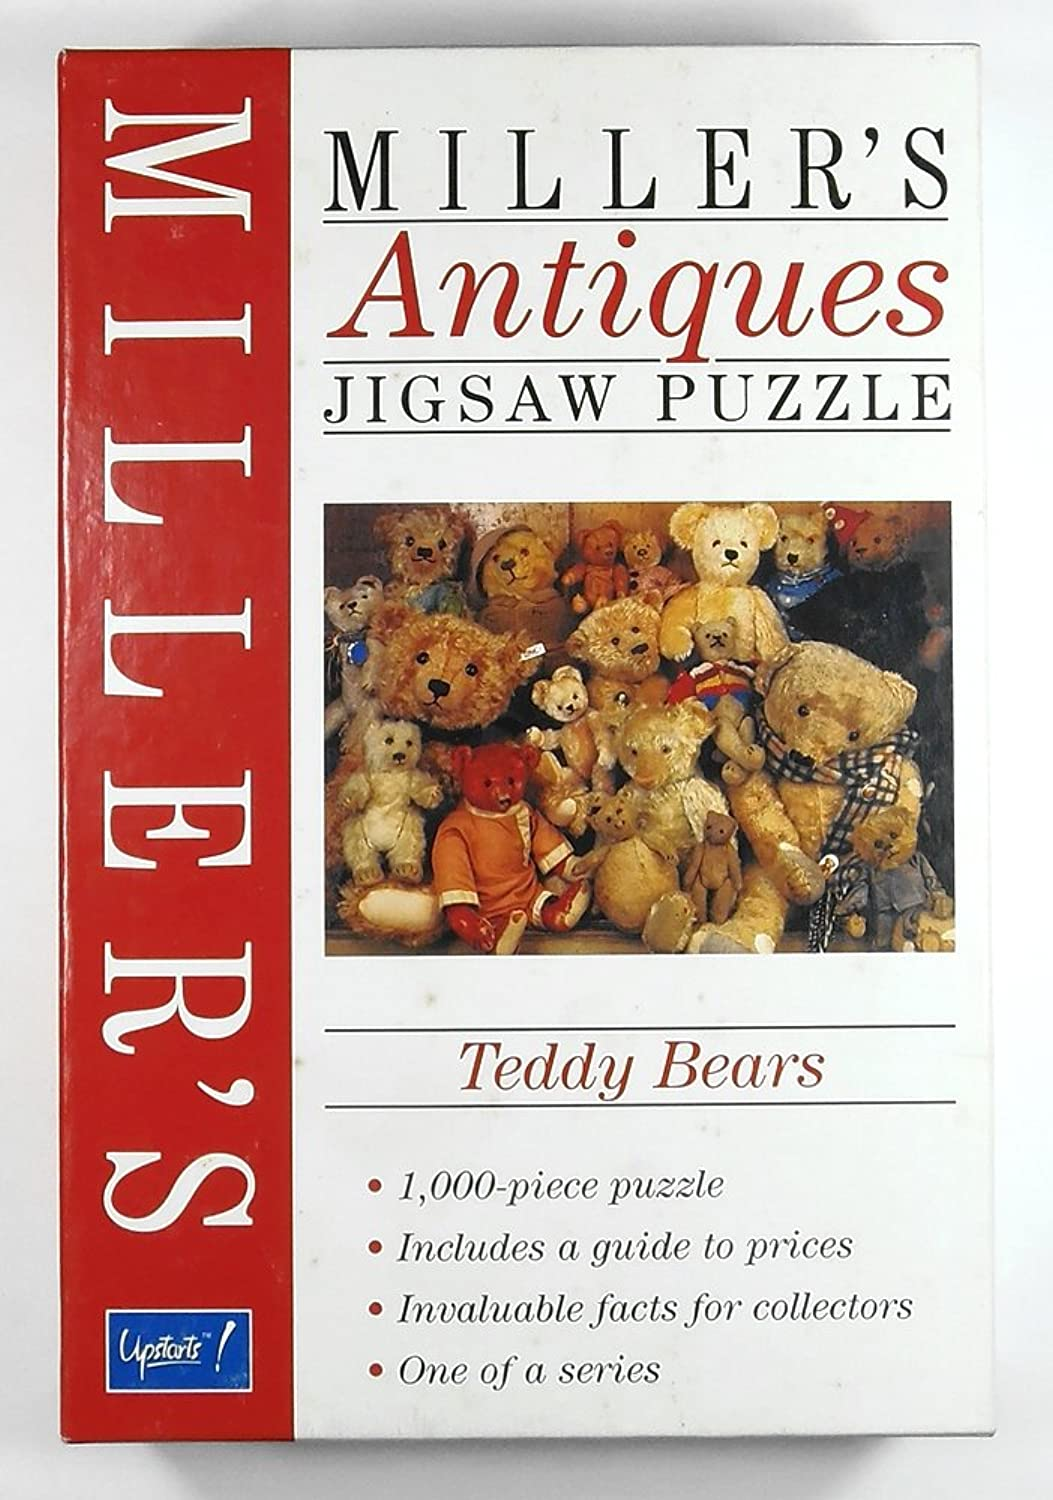 BePuzzled 1,000pc Jigsaw Puzzles  Miller's Antiques  Teddy Bears